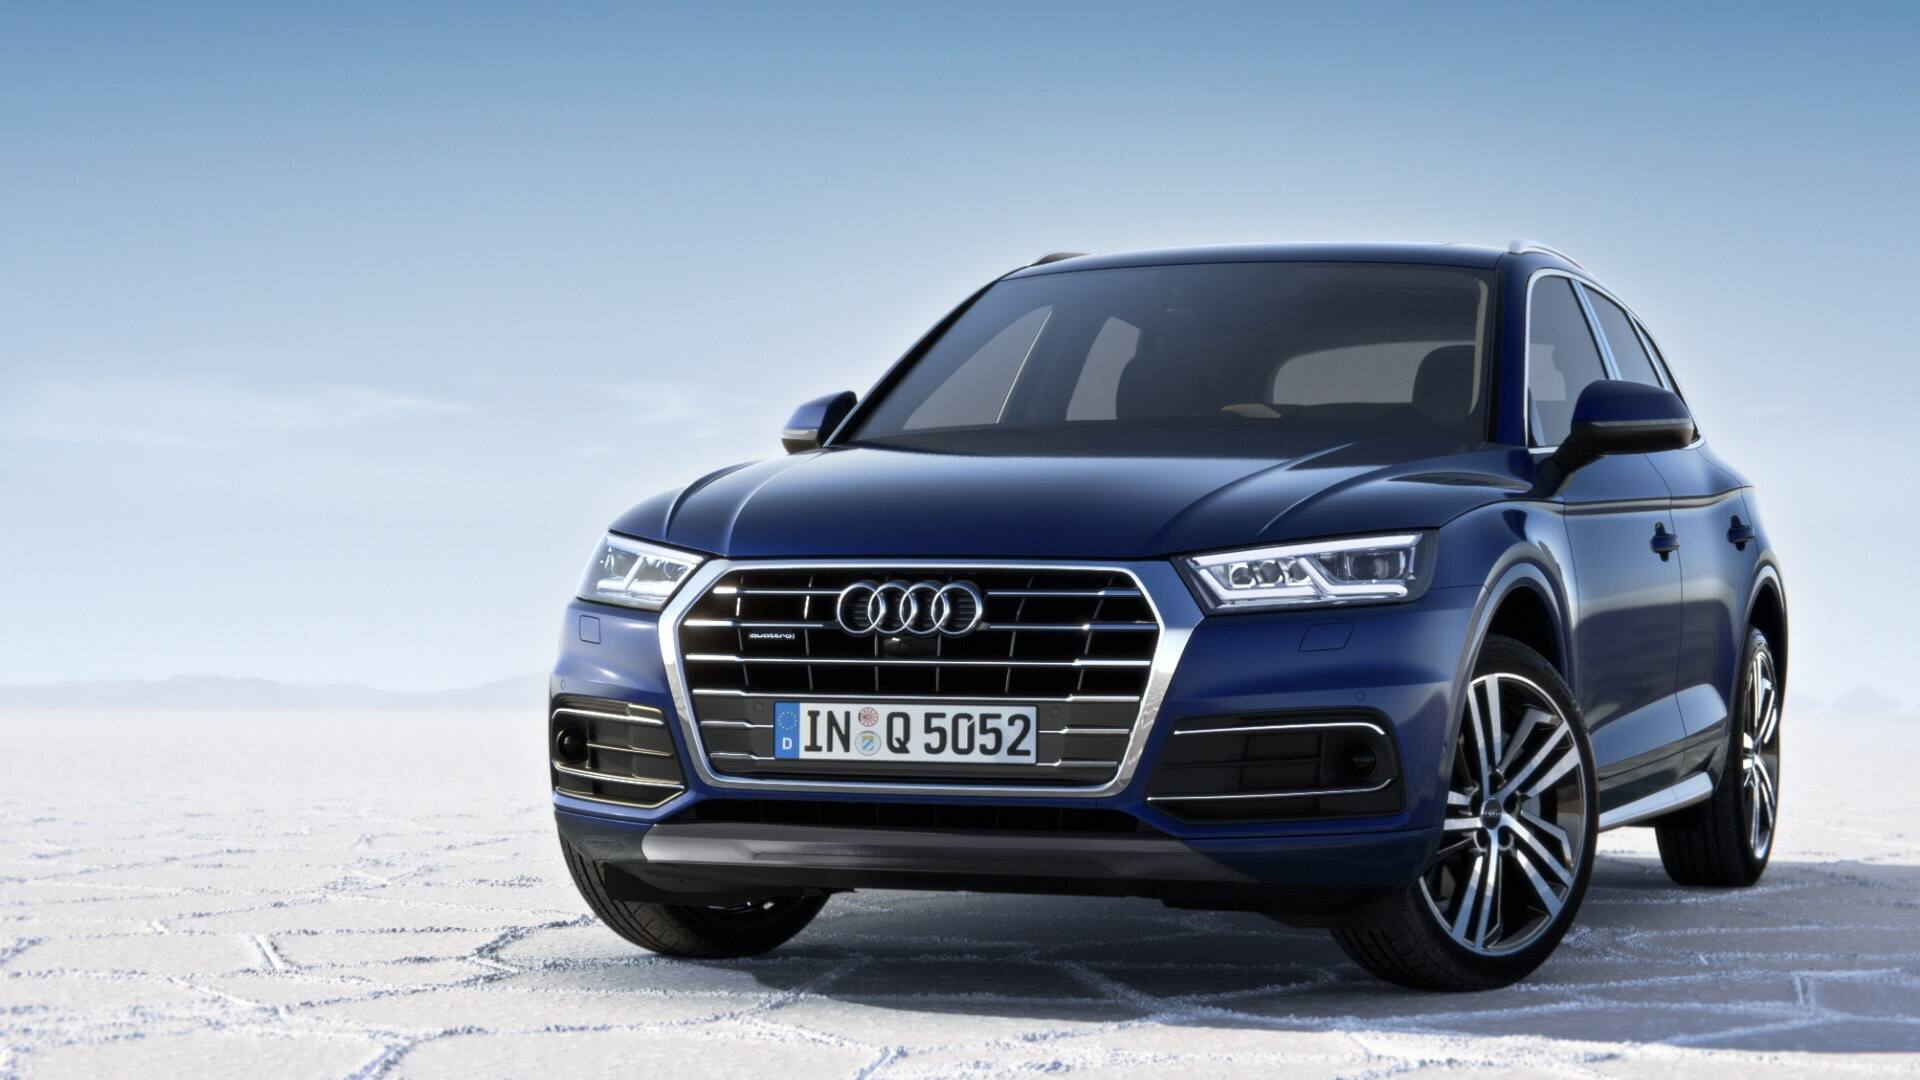 Dimension Audi Q5 >> Q5 2018 > Q5 > Audi Deutschland